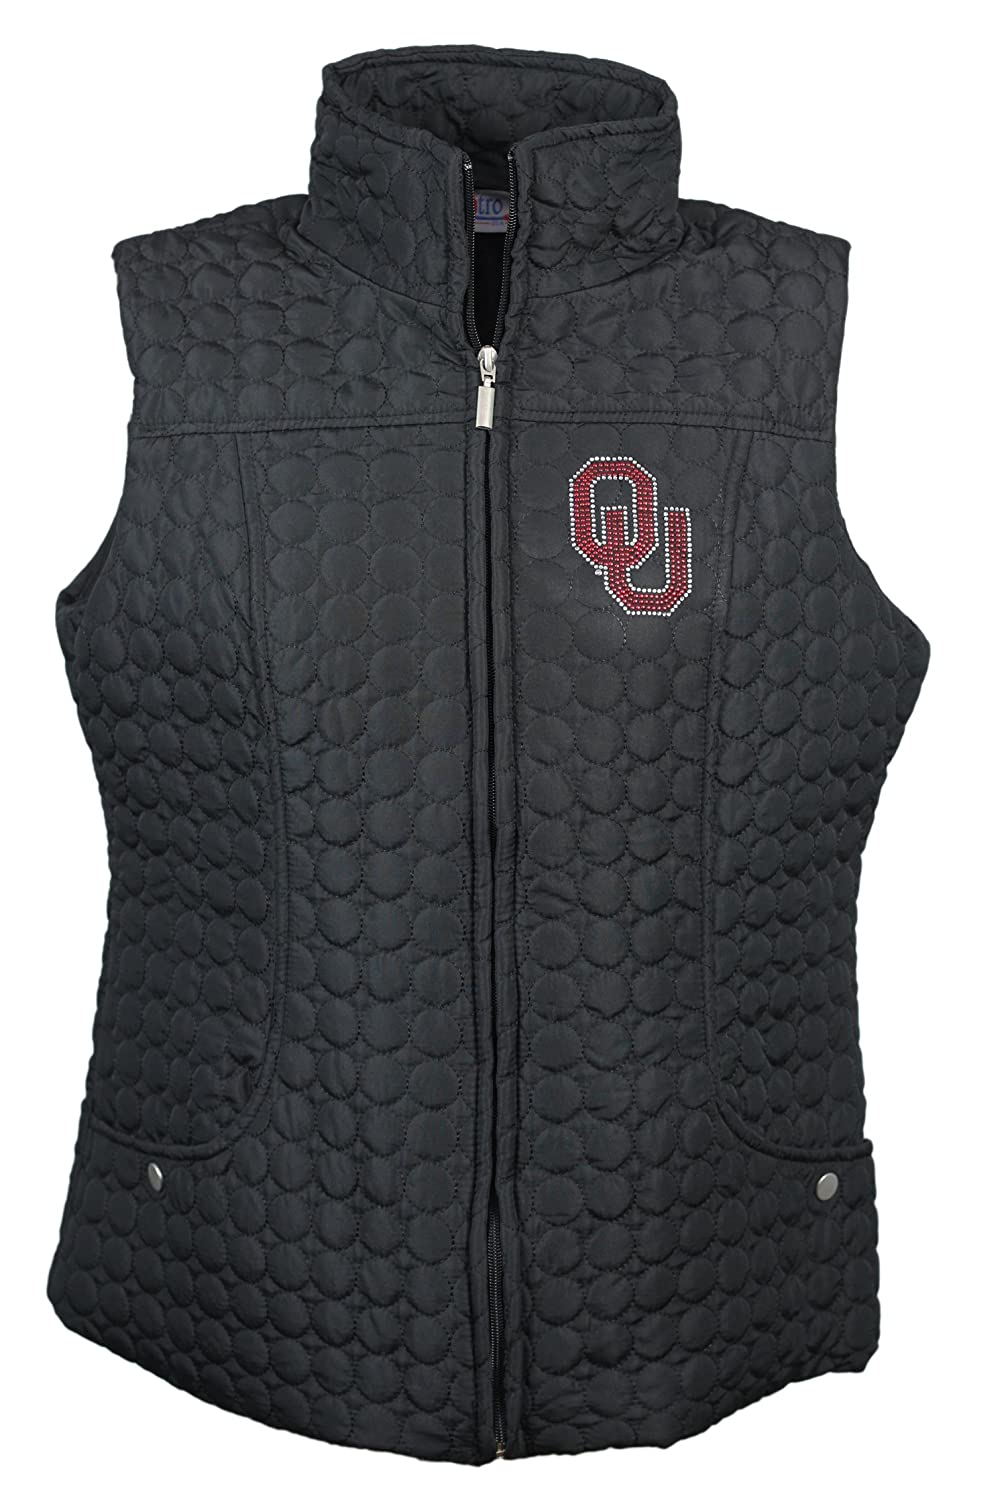 Nitro USA NCAA Womens Circle Quilted Vest with Rhinestone /& Metallic Ou Logo